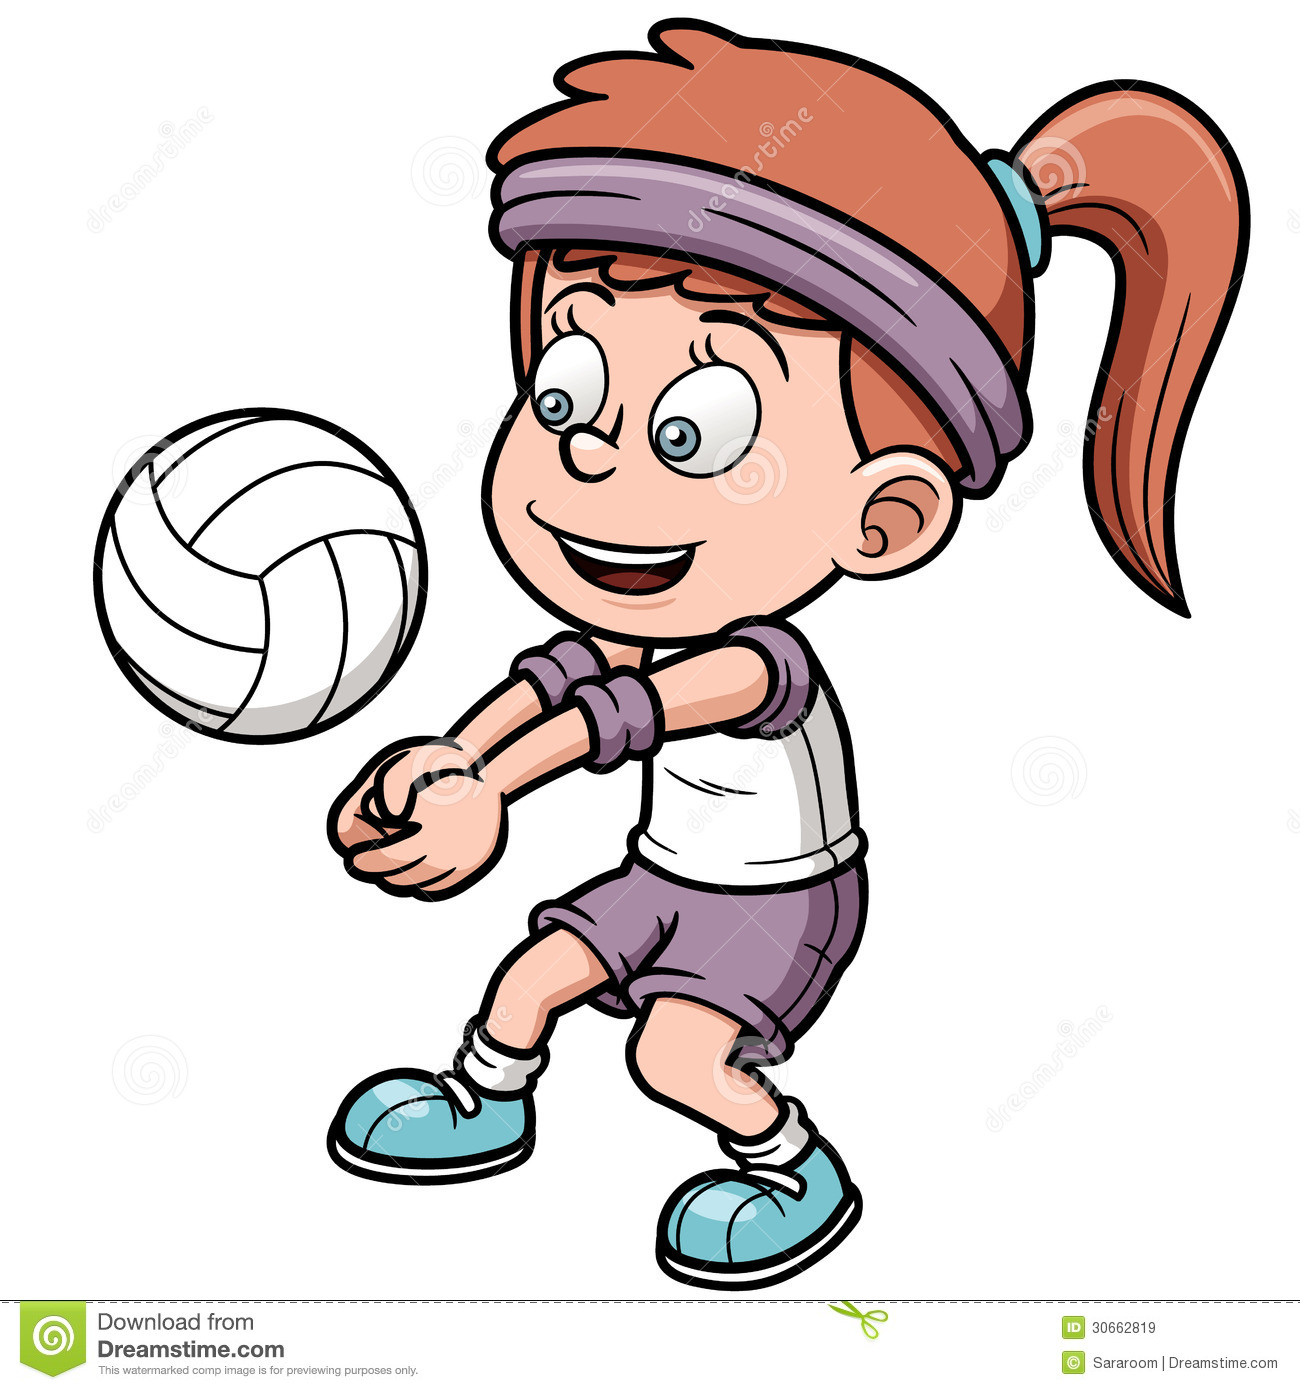 Volleyball clipart animated. Free download best